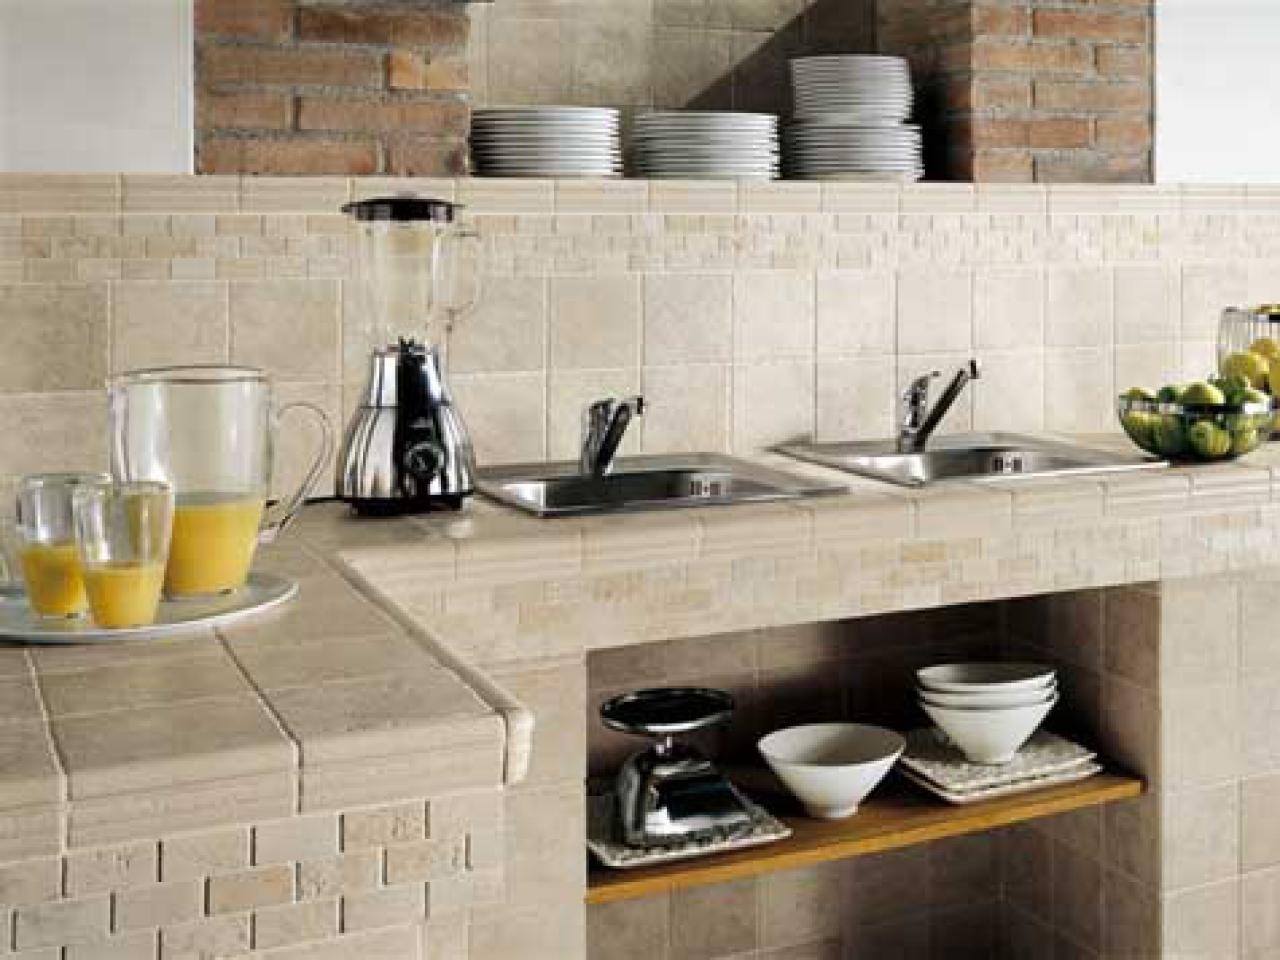 tile kitchen countertops pictures amp ideas from hgtv hgtv wonderfull kitchen countertops and backsplash ideas